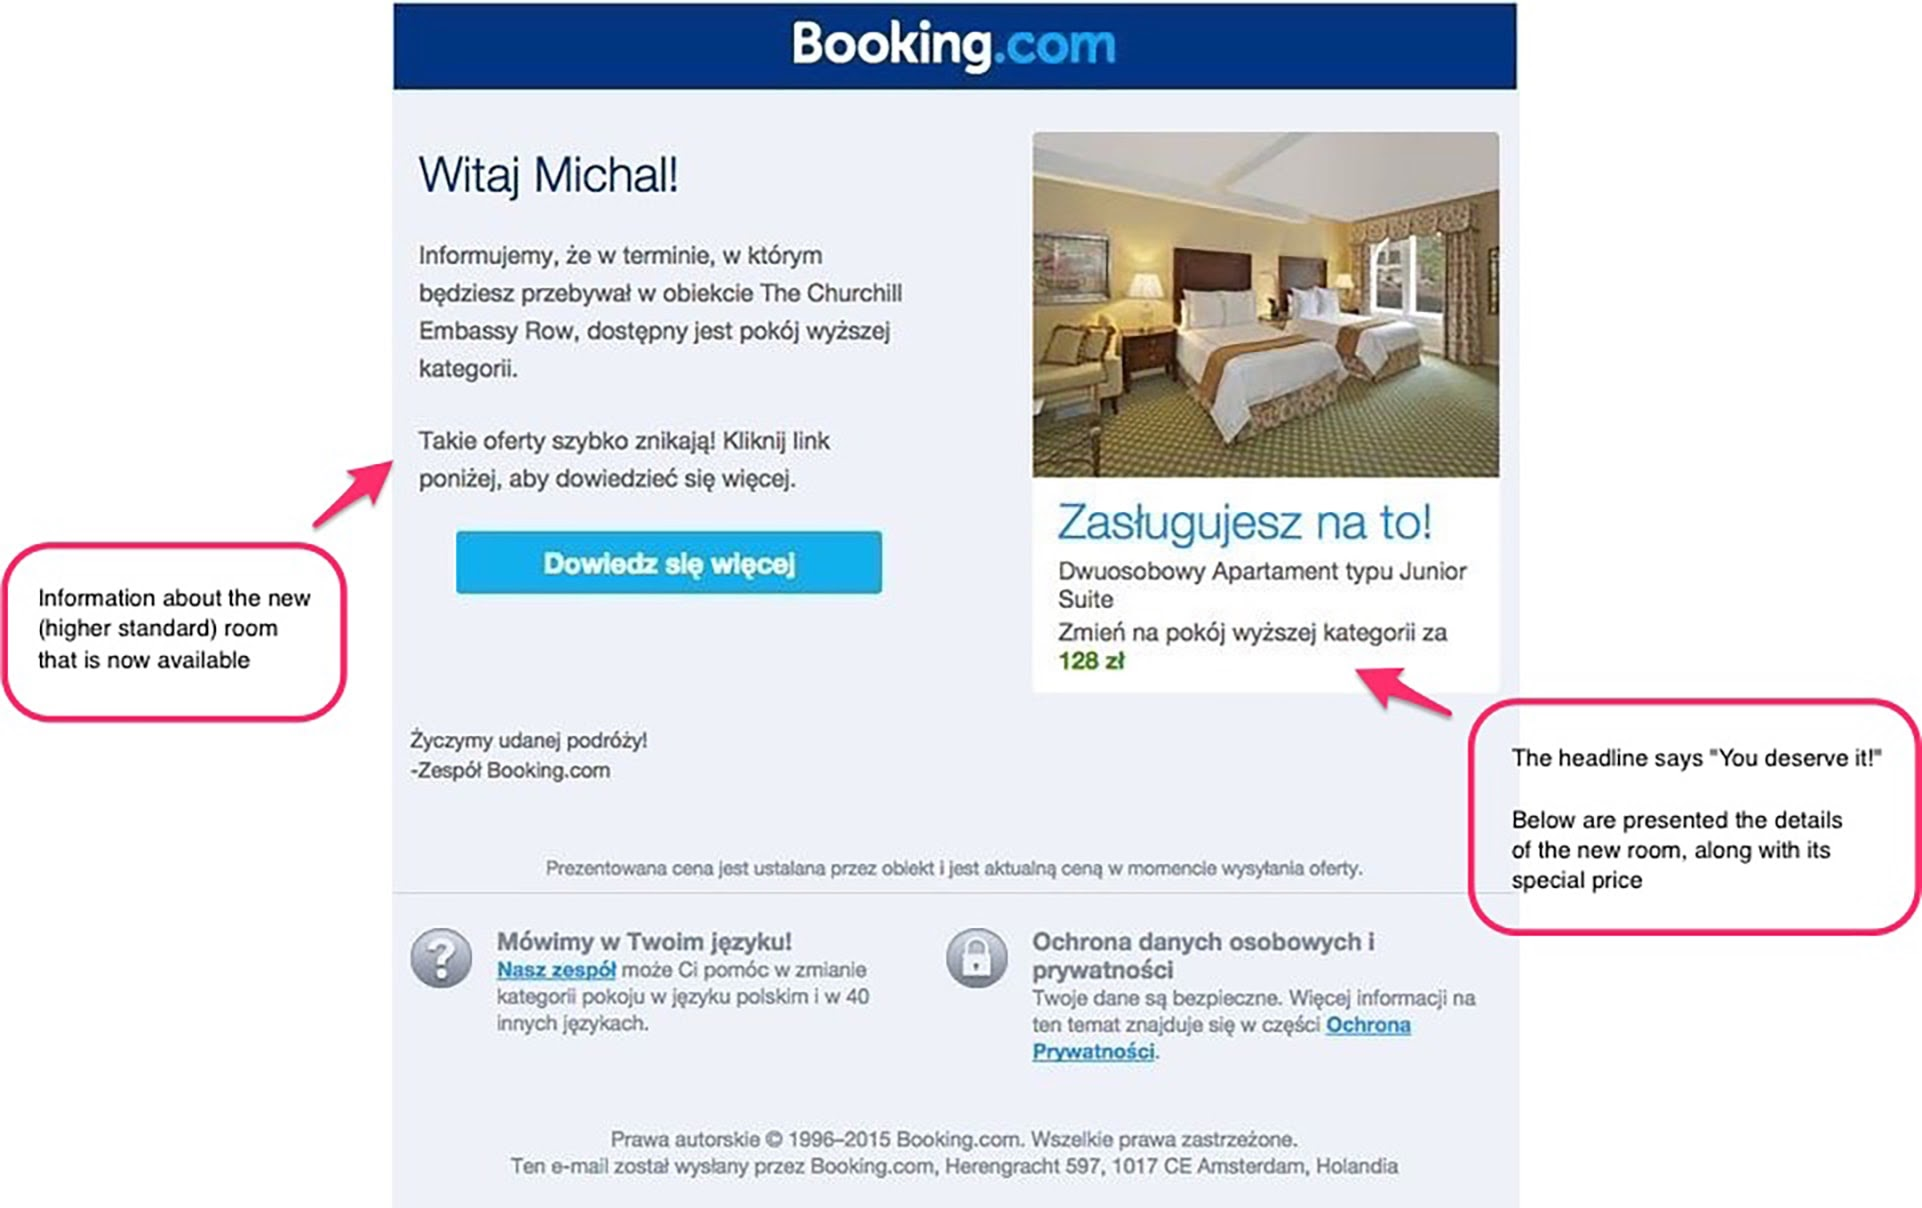 Up-selling Promotional Email from Booking